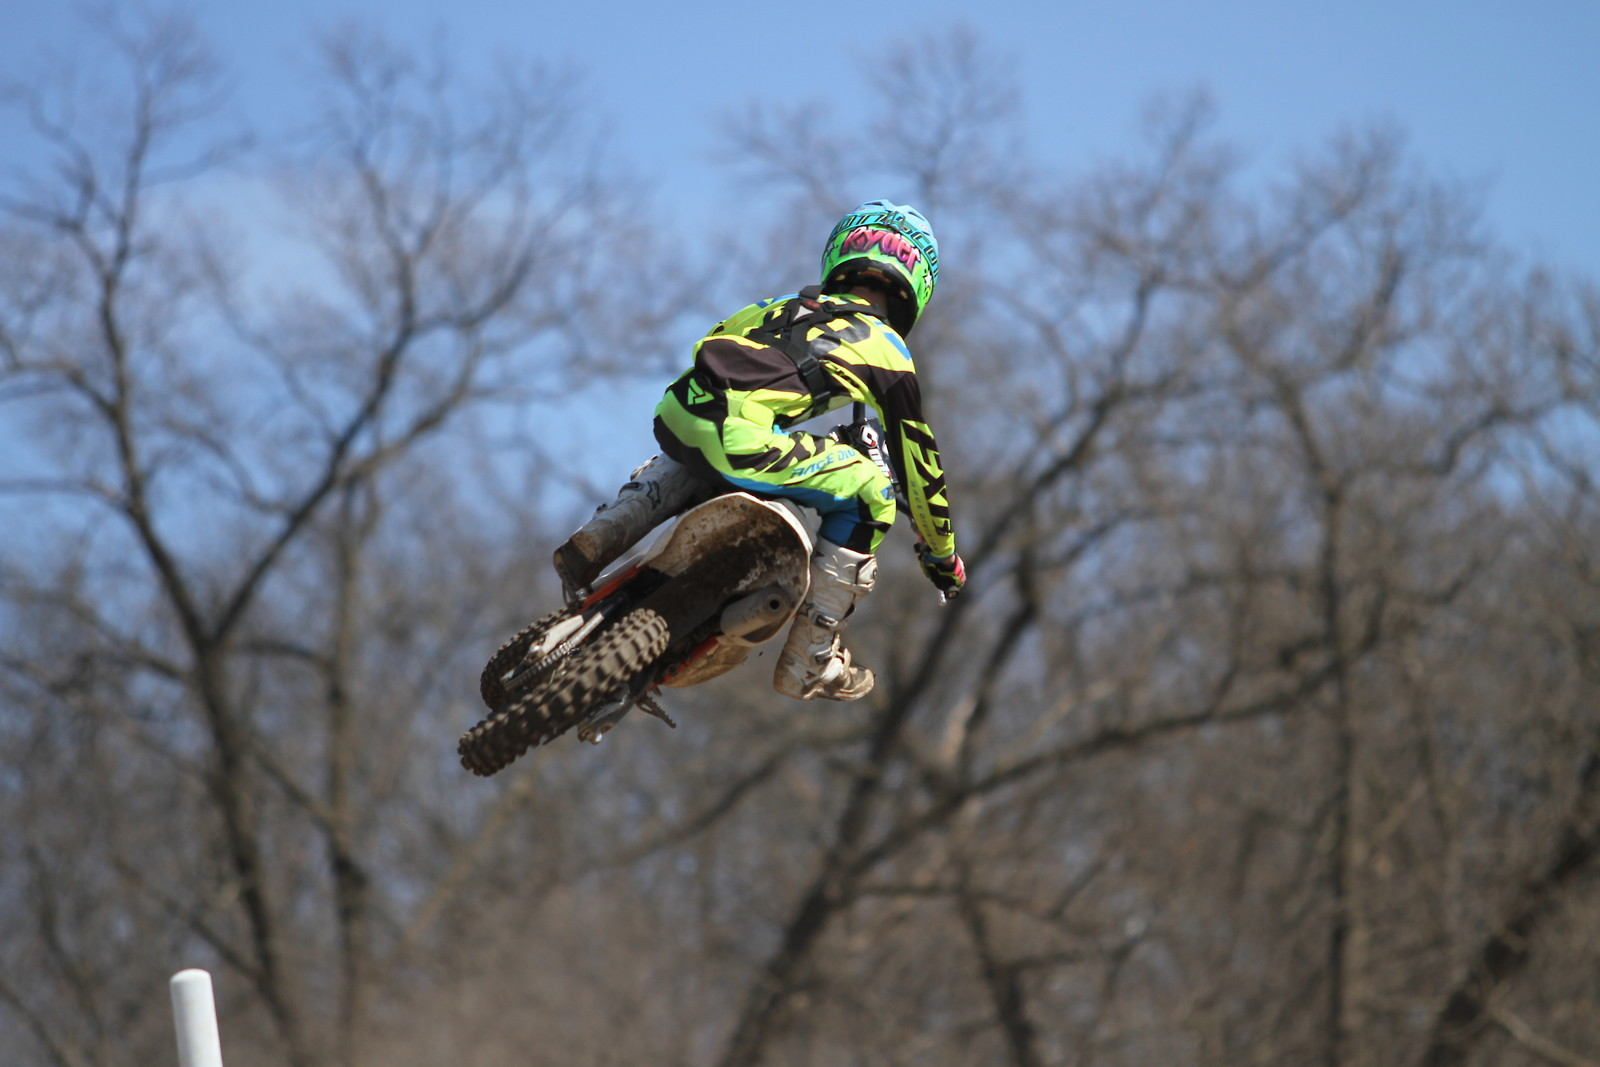 Ryder Beth - midwest_moto_media - Motocross Pictures - Vital MX